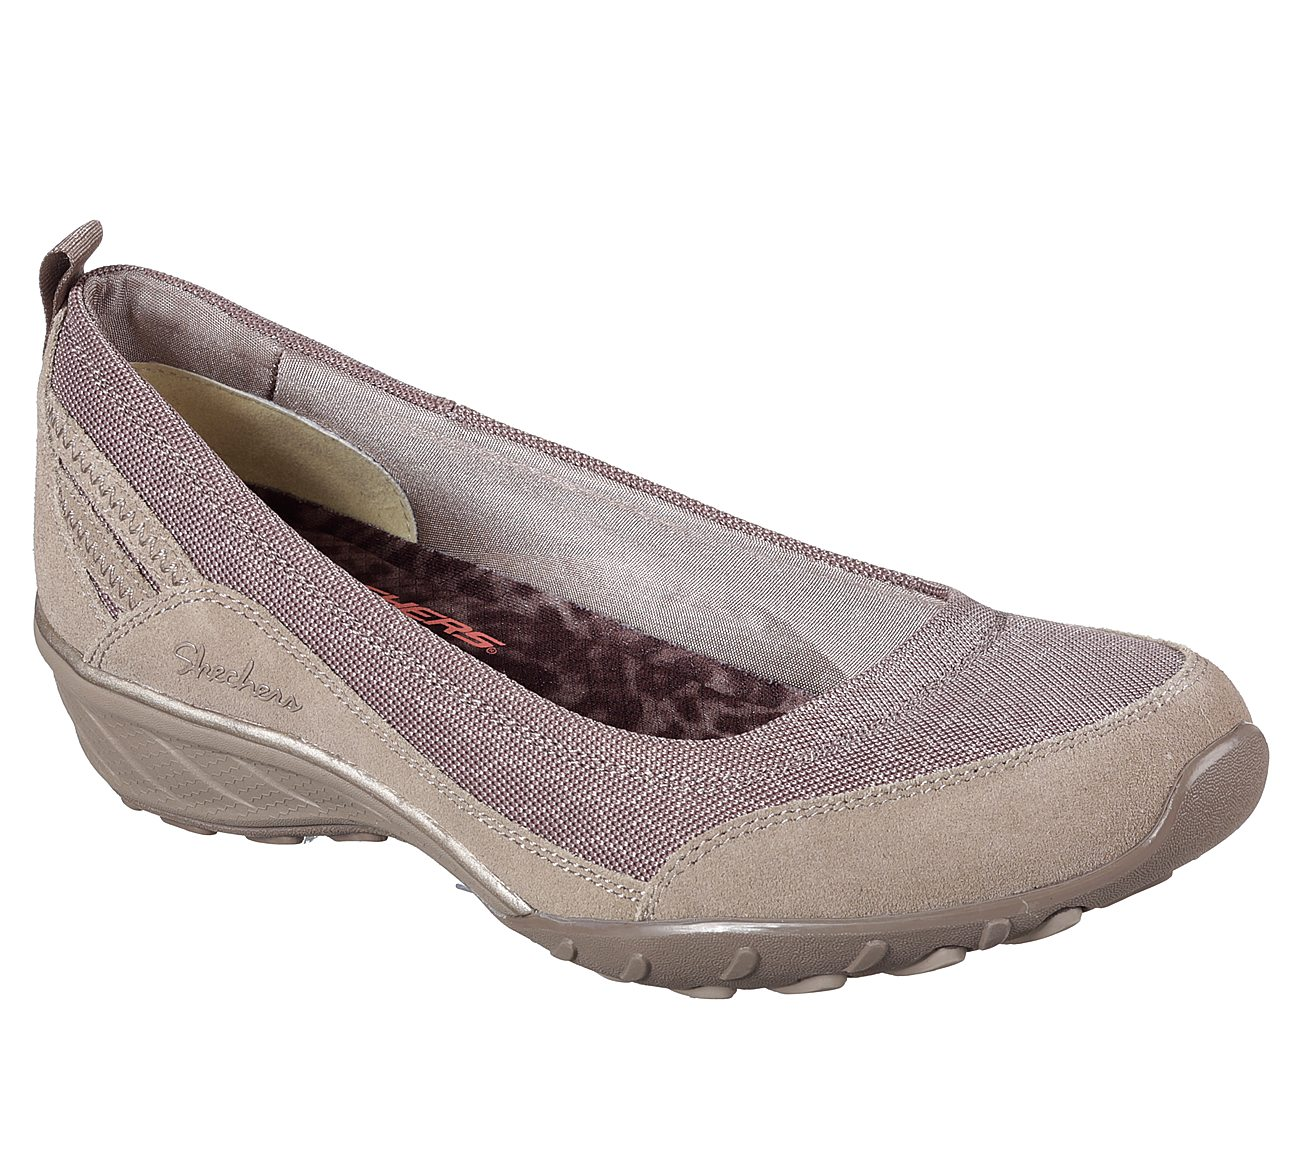 Skechers Taupe 22912 Savvy Relaxed Memory Foam Womens Size 6